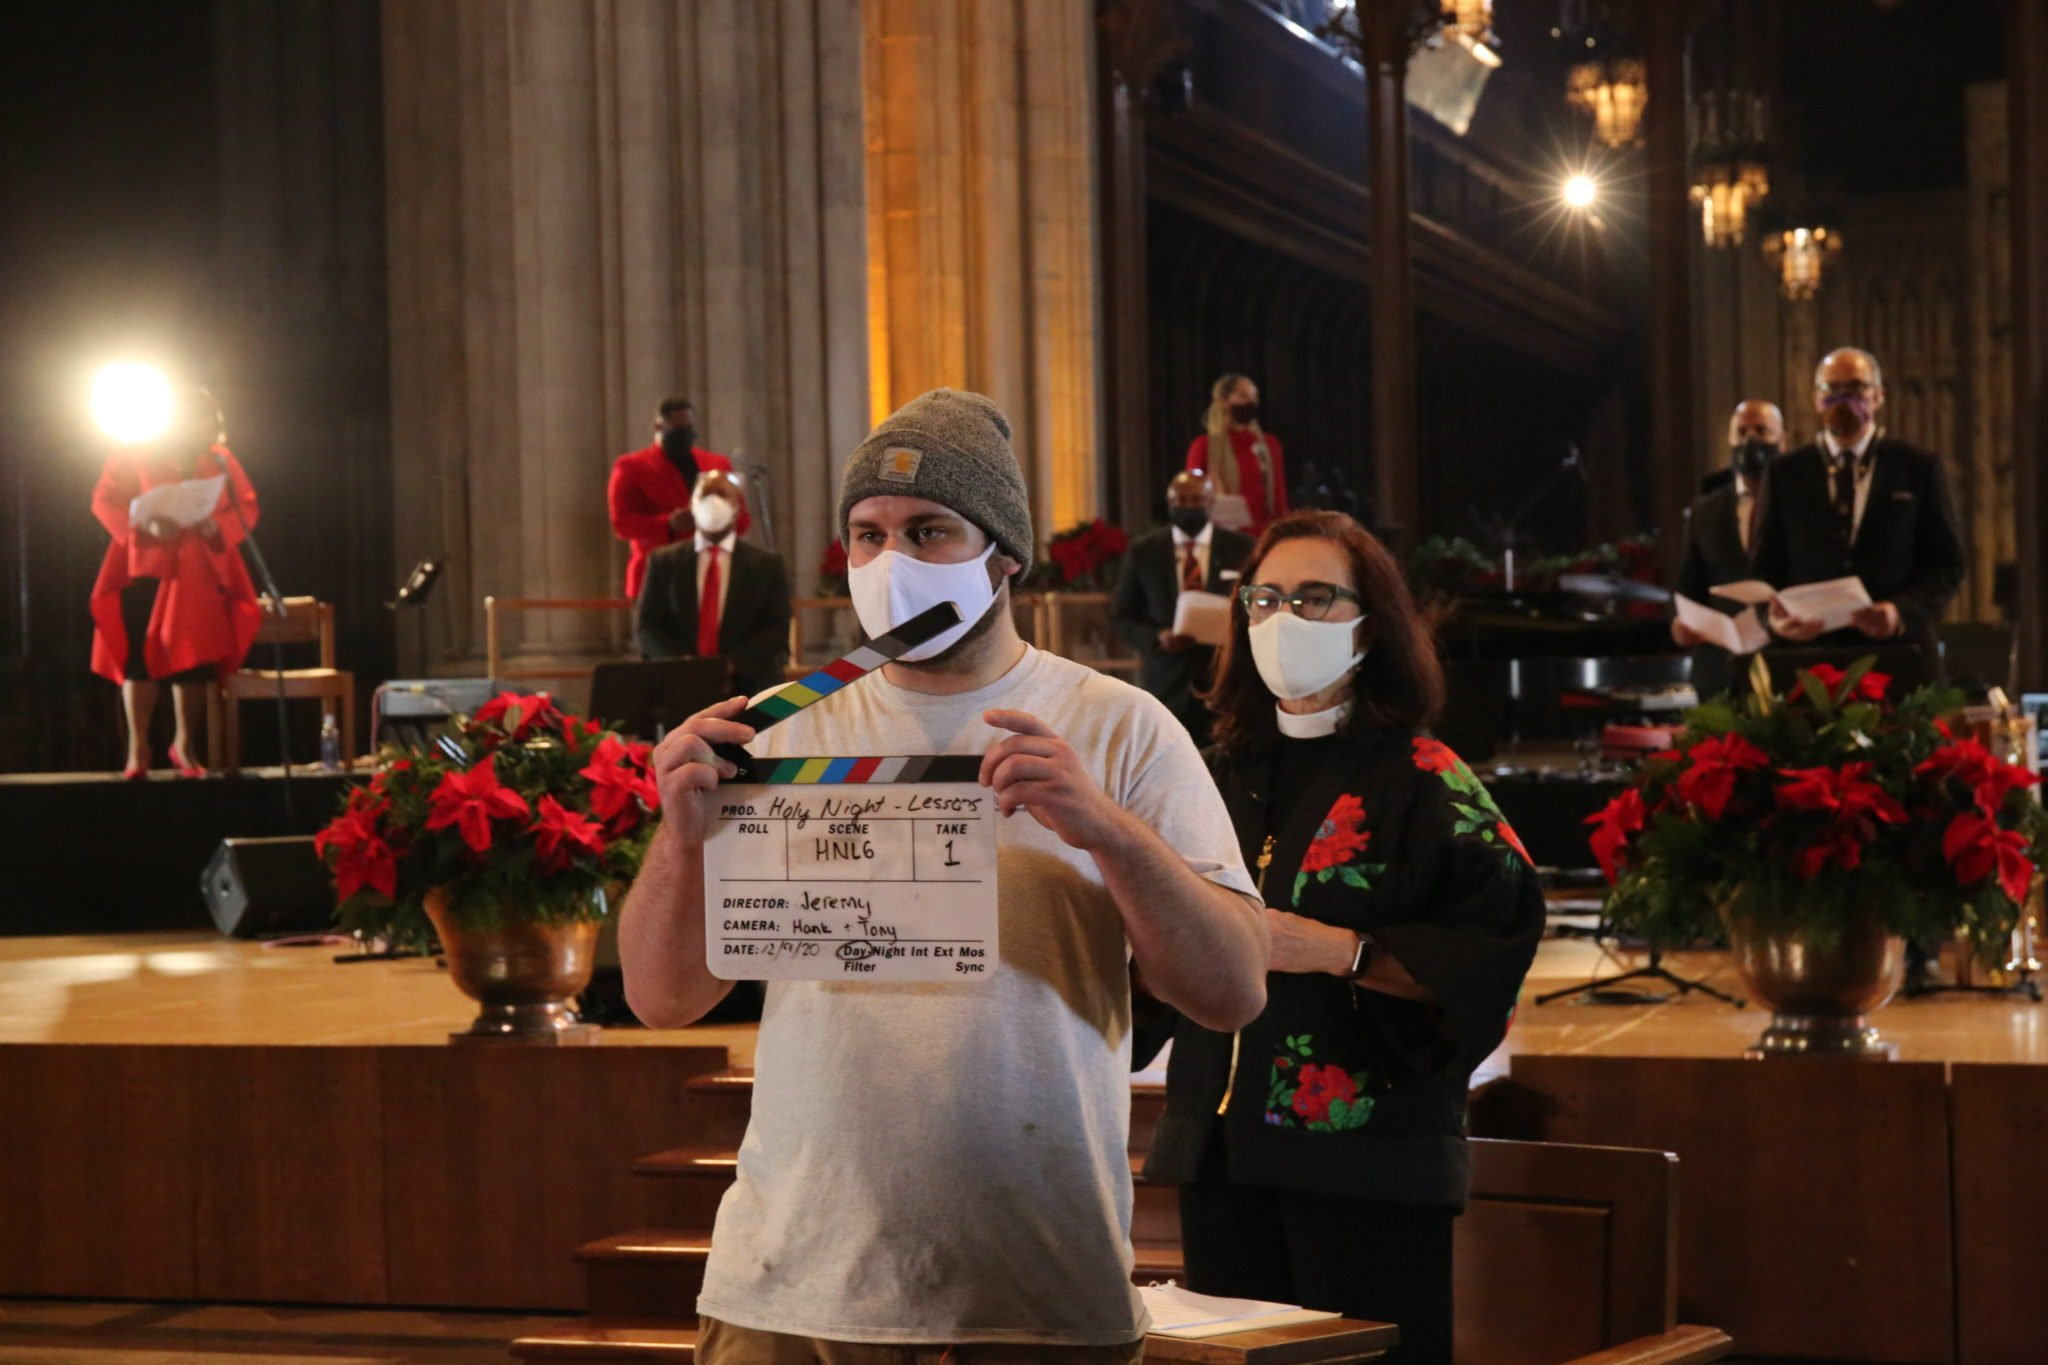 PHOTOS: National Cathedral Takes Its 2020 Christmas Services Virtual